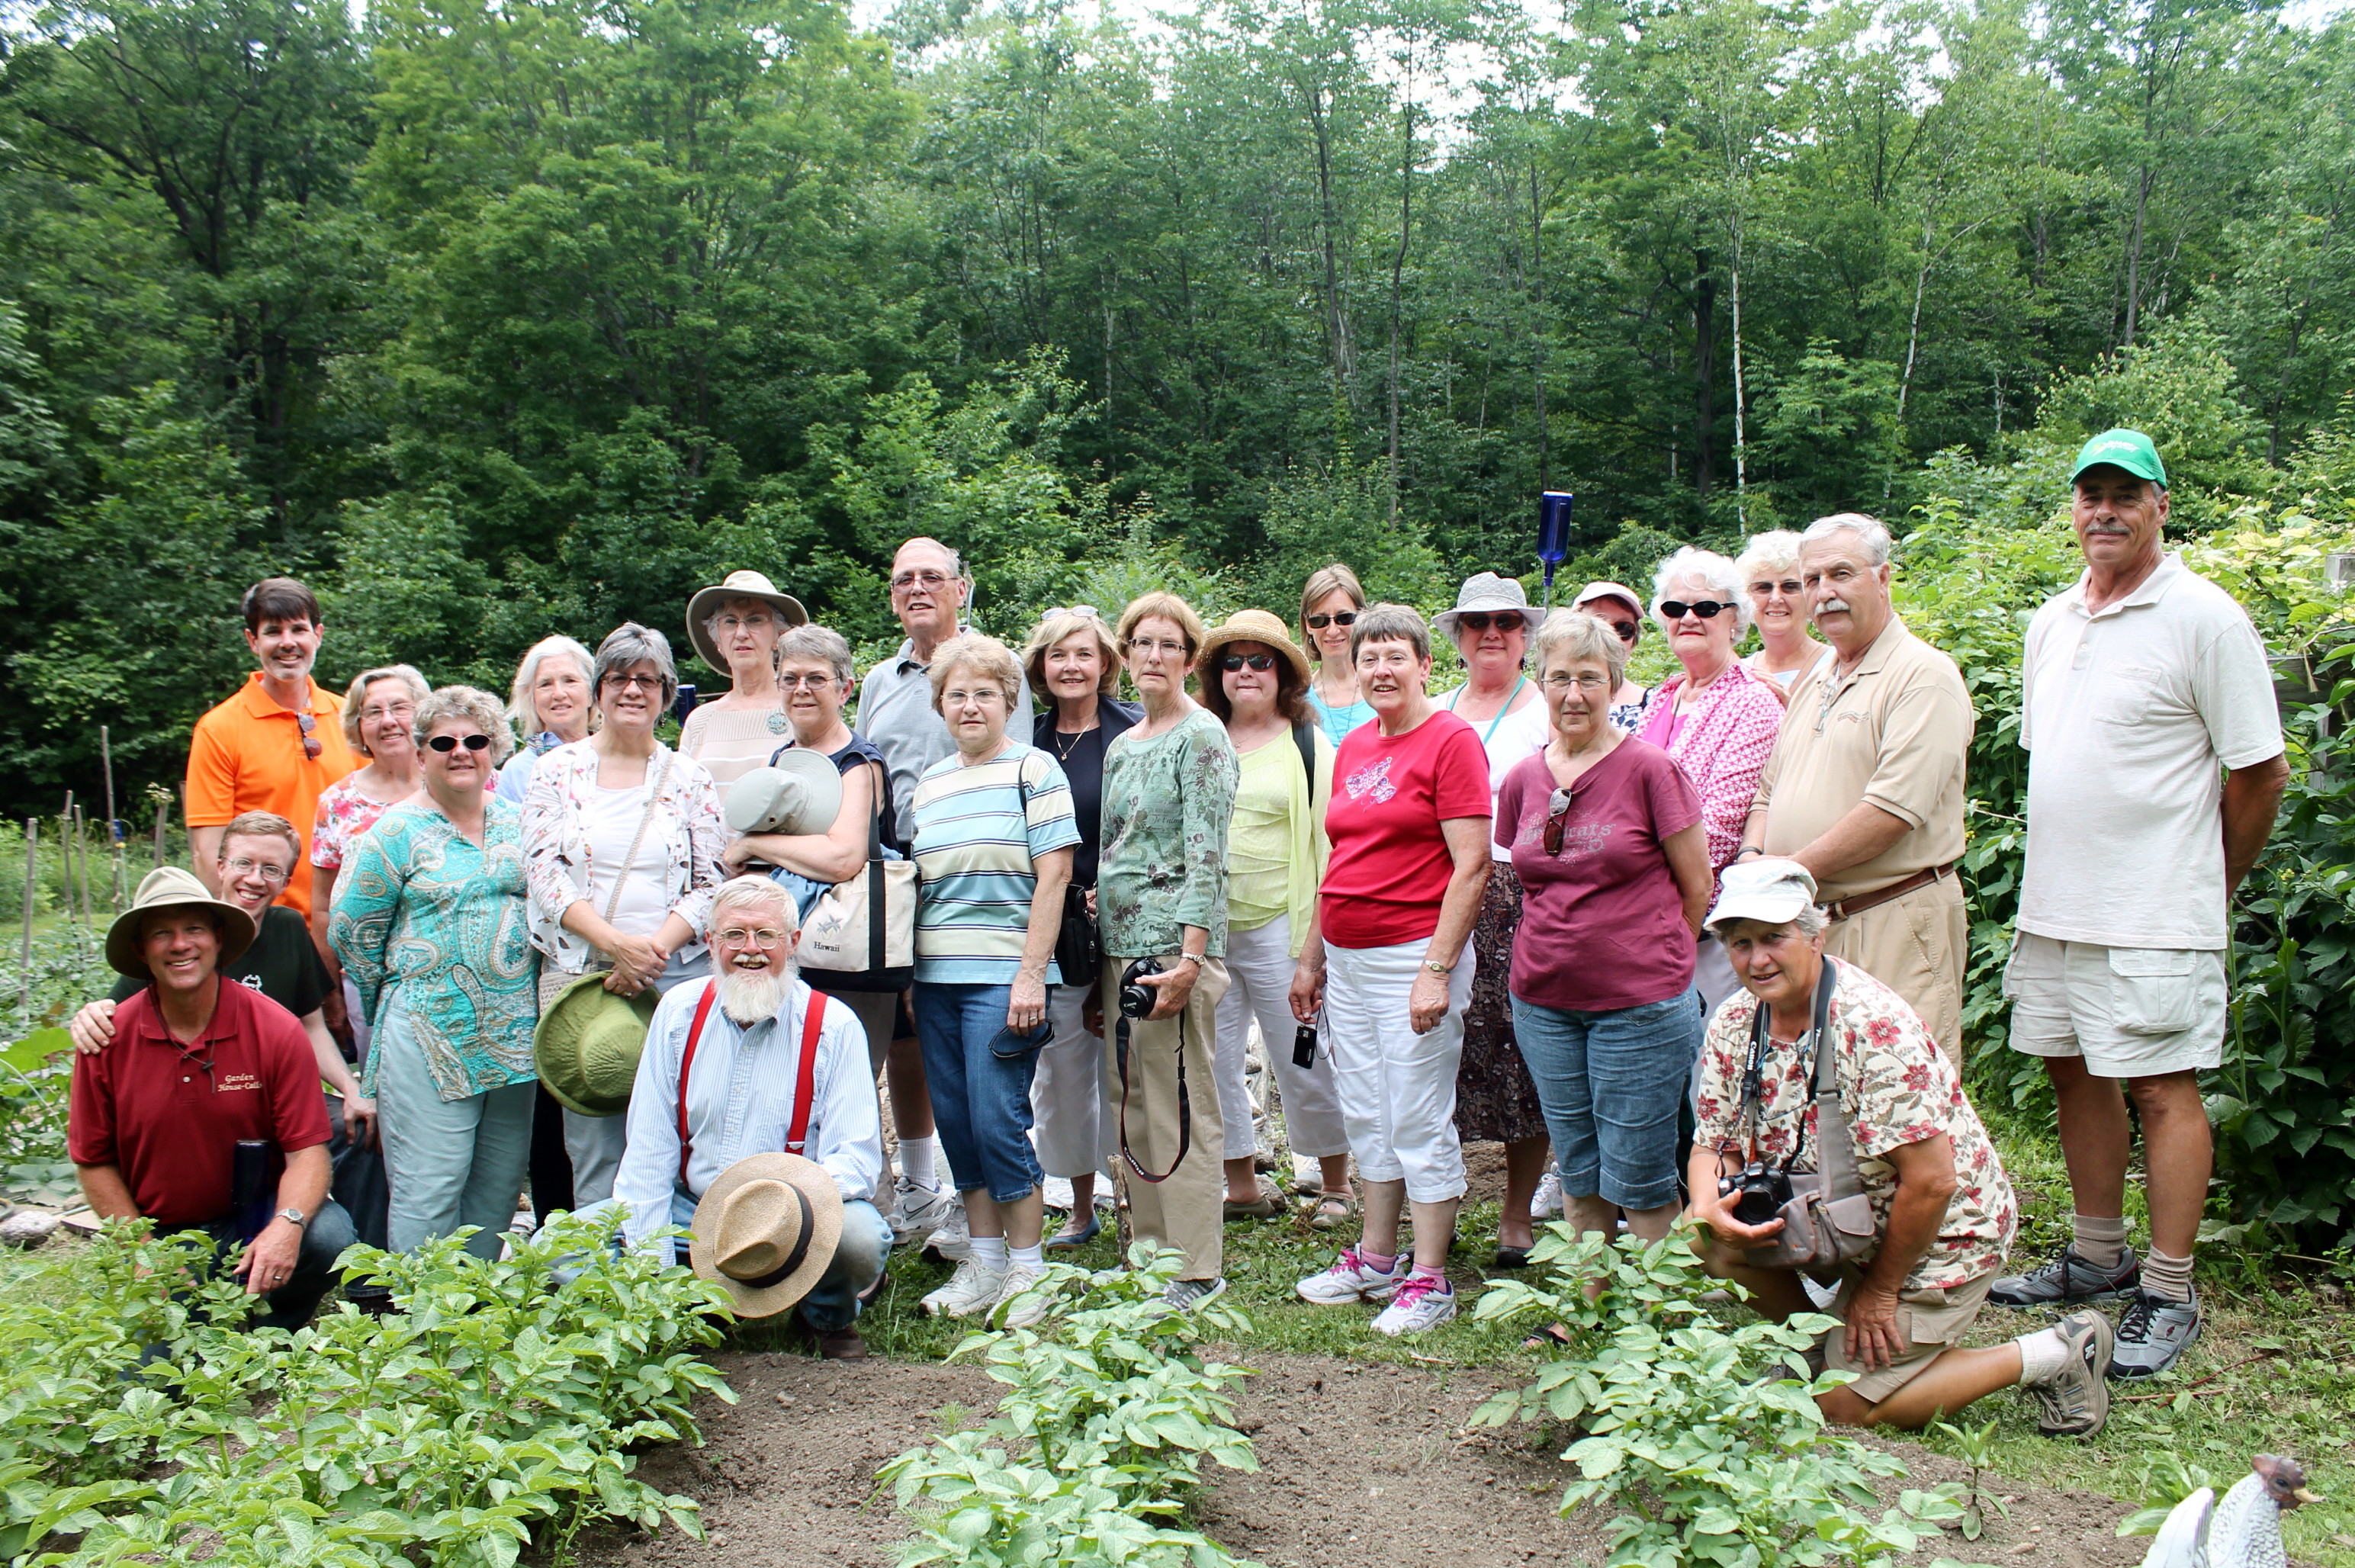 Gardening Group: George Weigel Central PA Garden